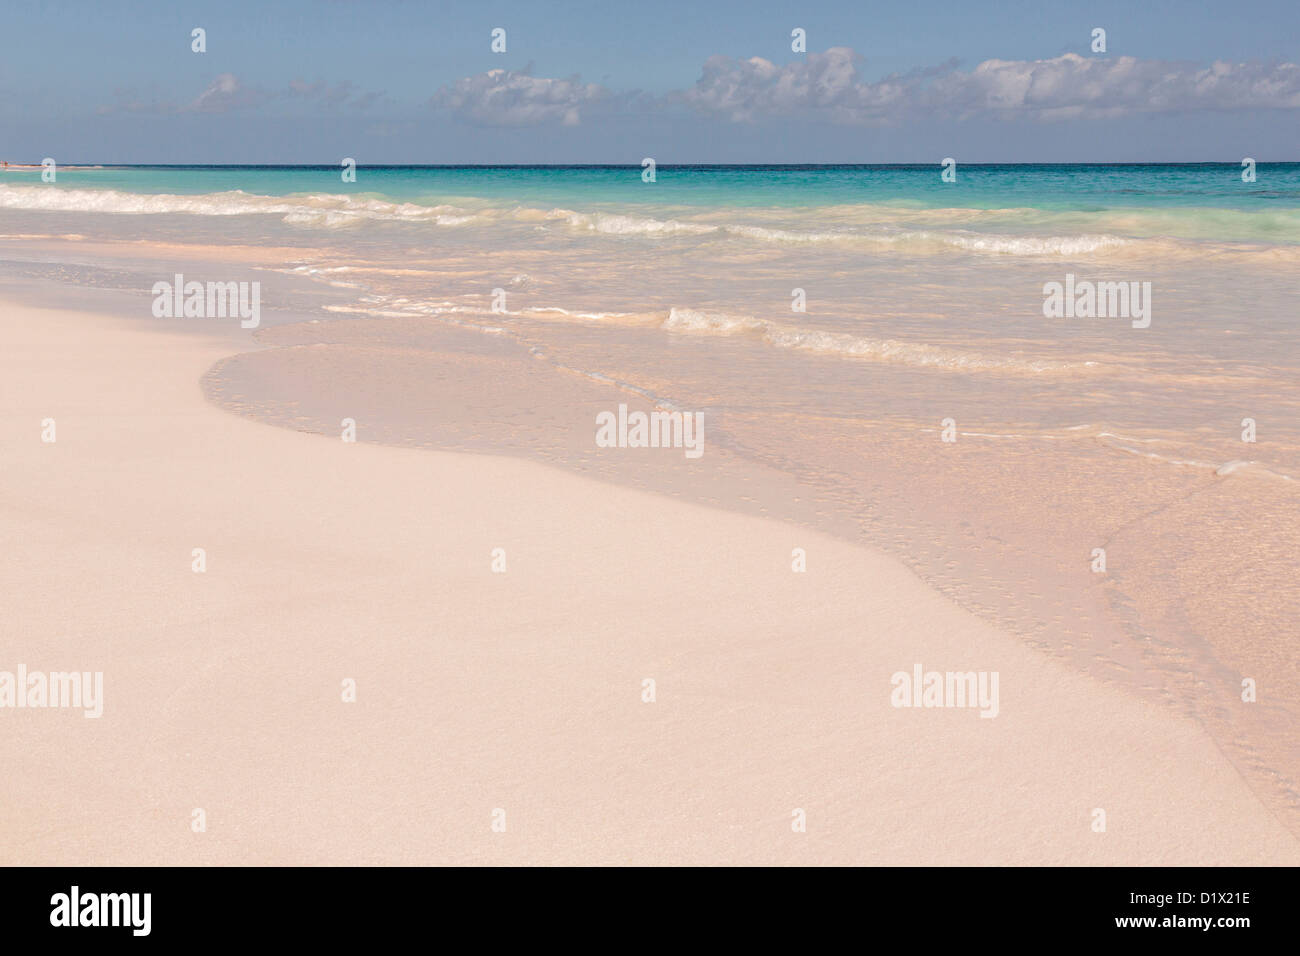 the pink sands beach in dunmore town harbour island the bahamas